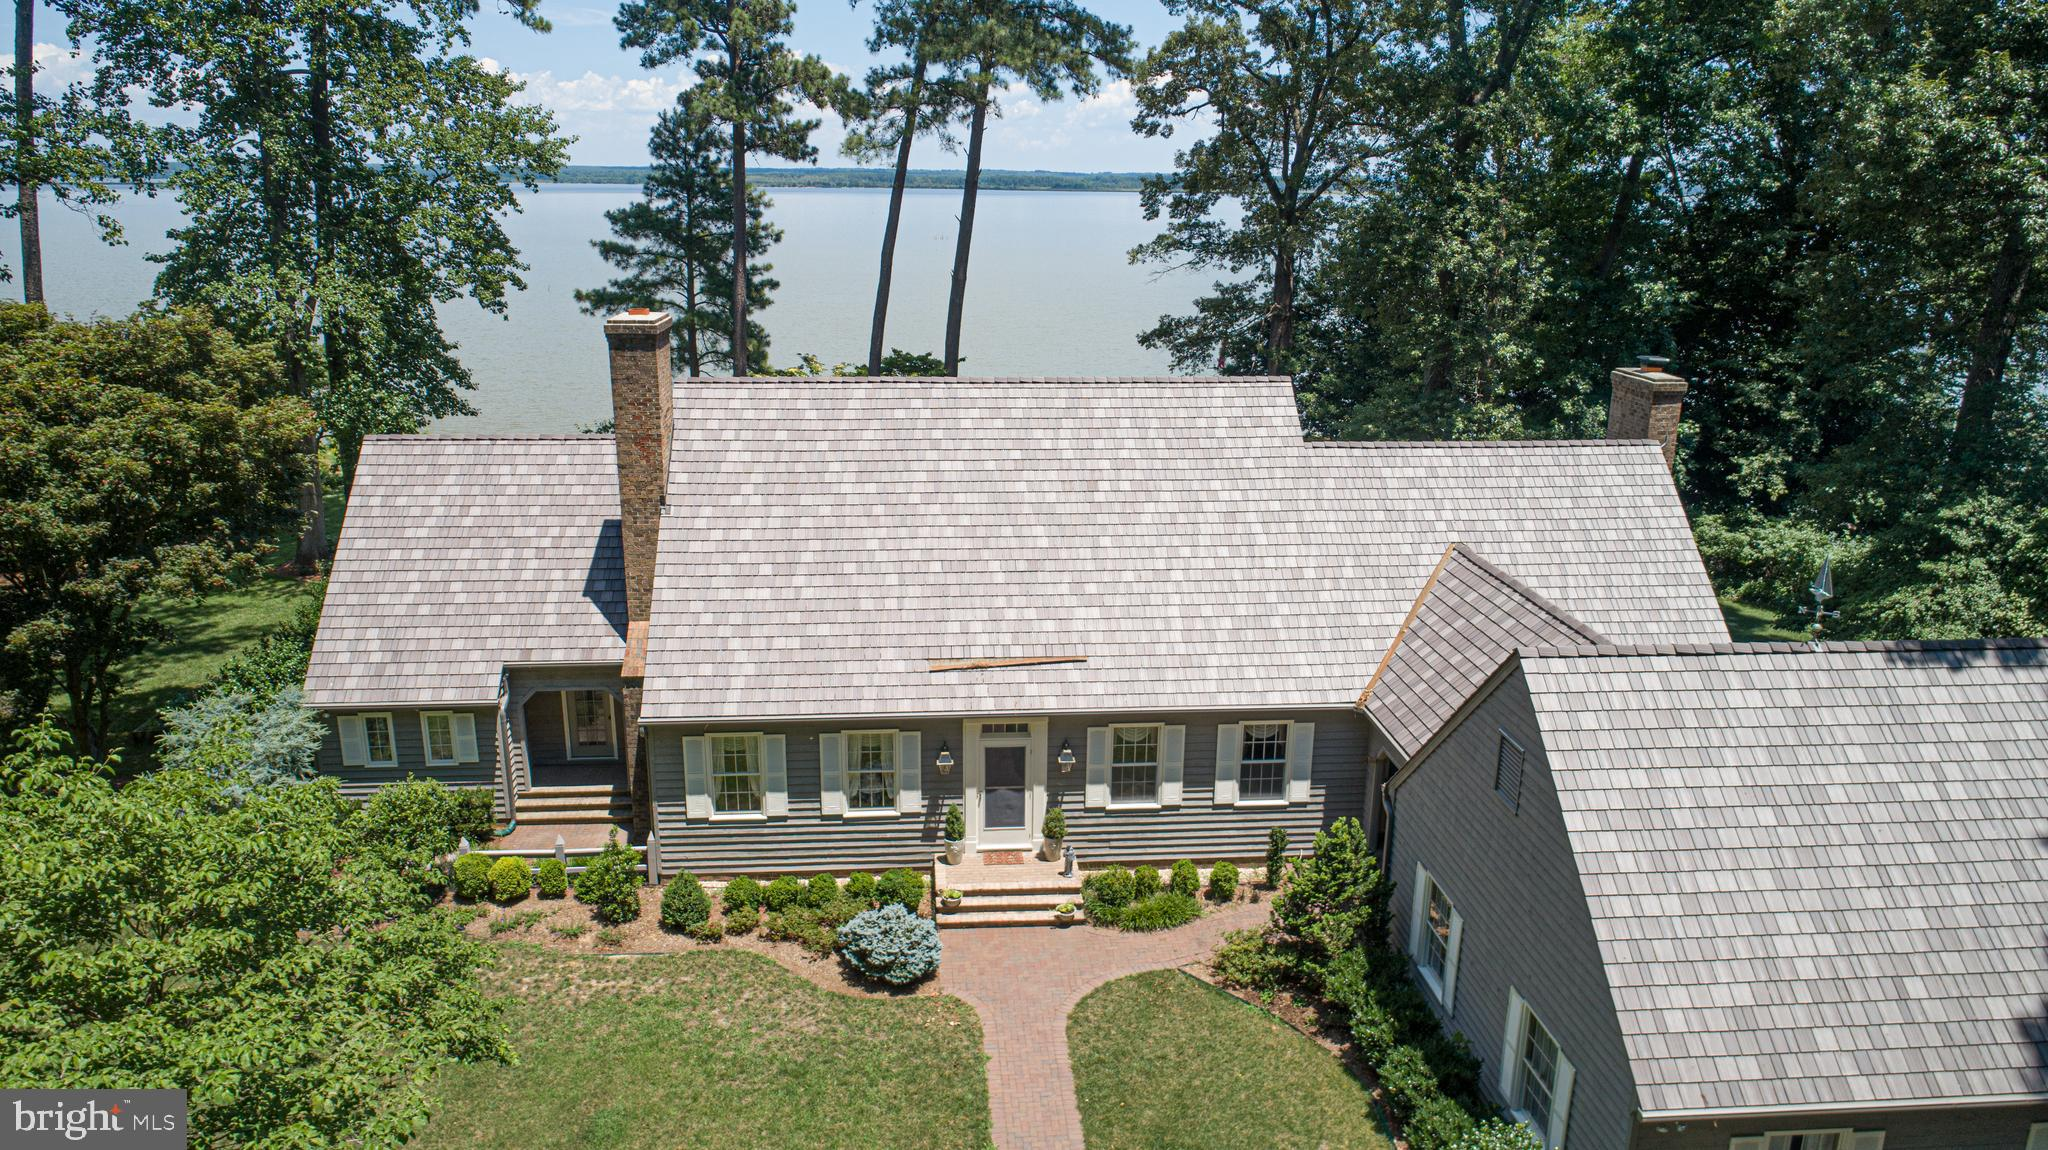 476 WILSON ACRES ROAD, TAPPAHANNOCK, VA 22560